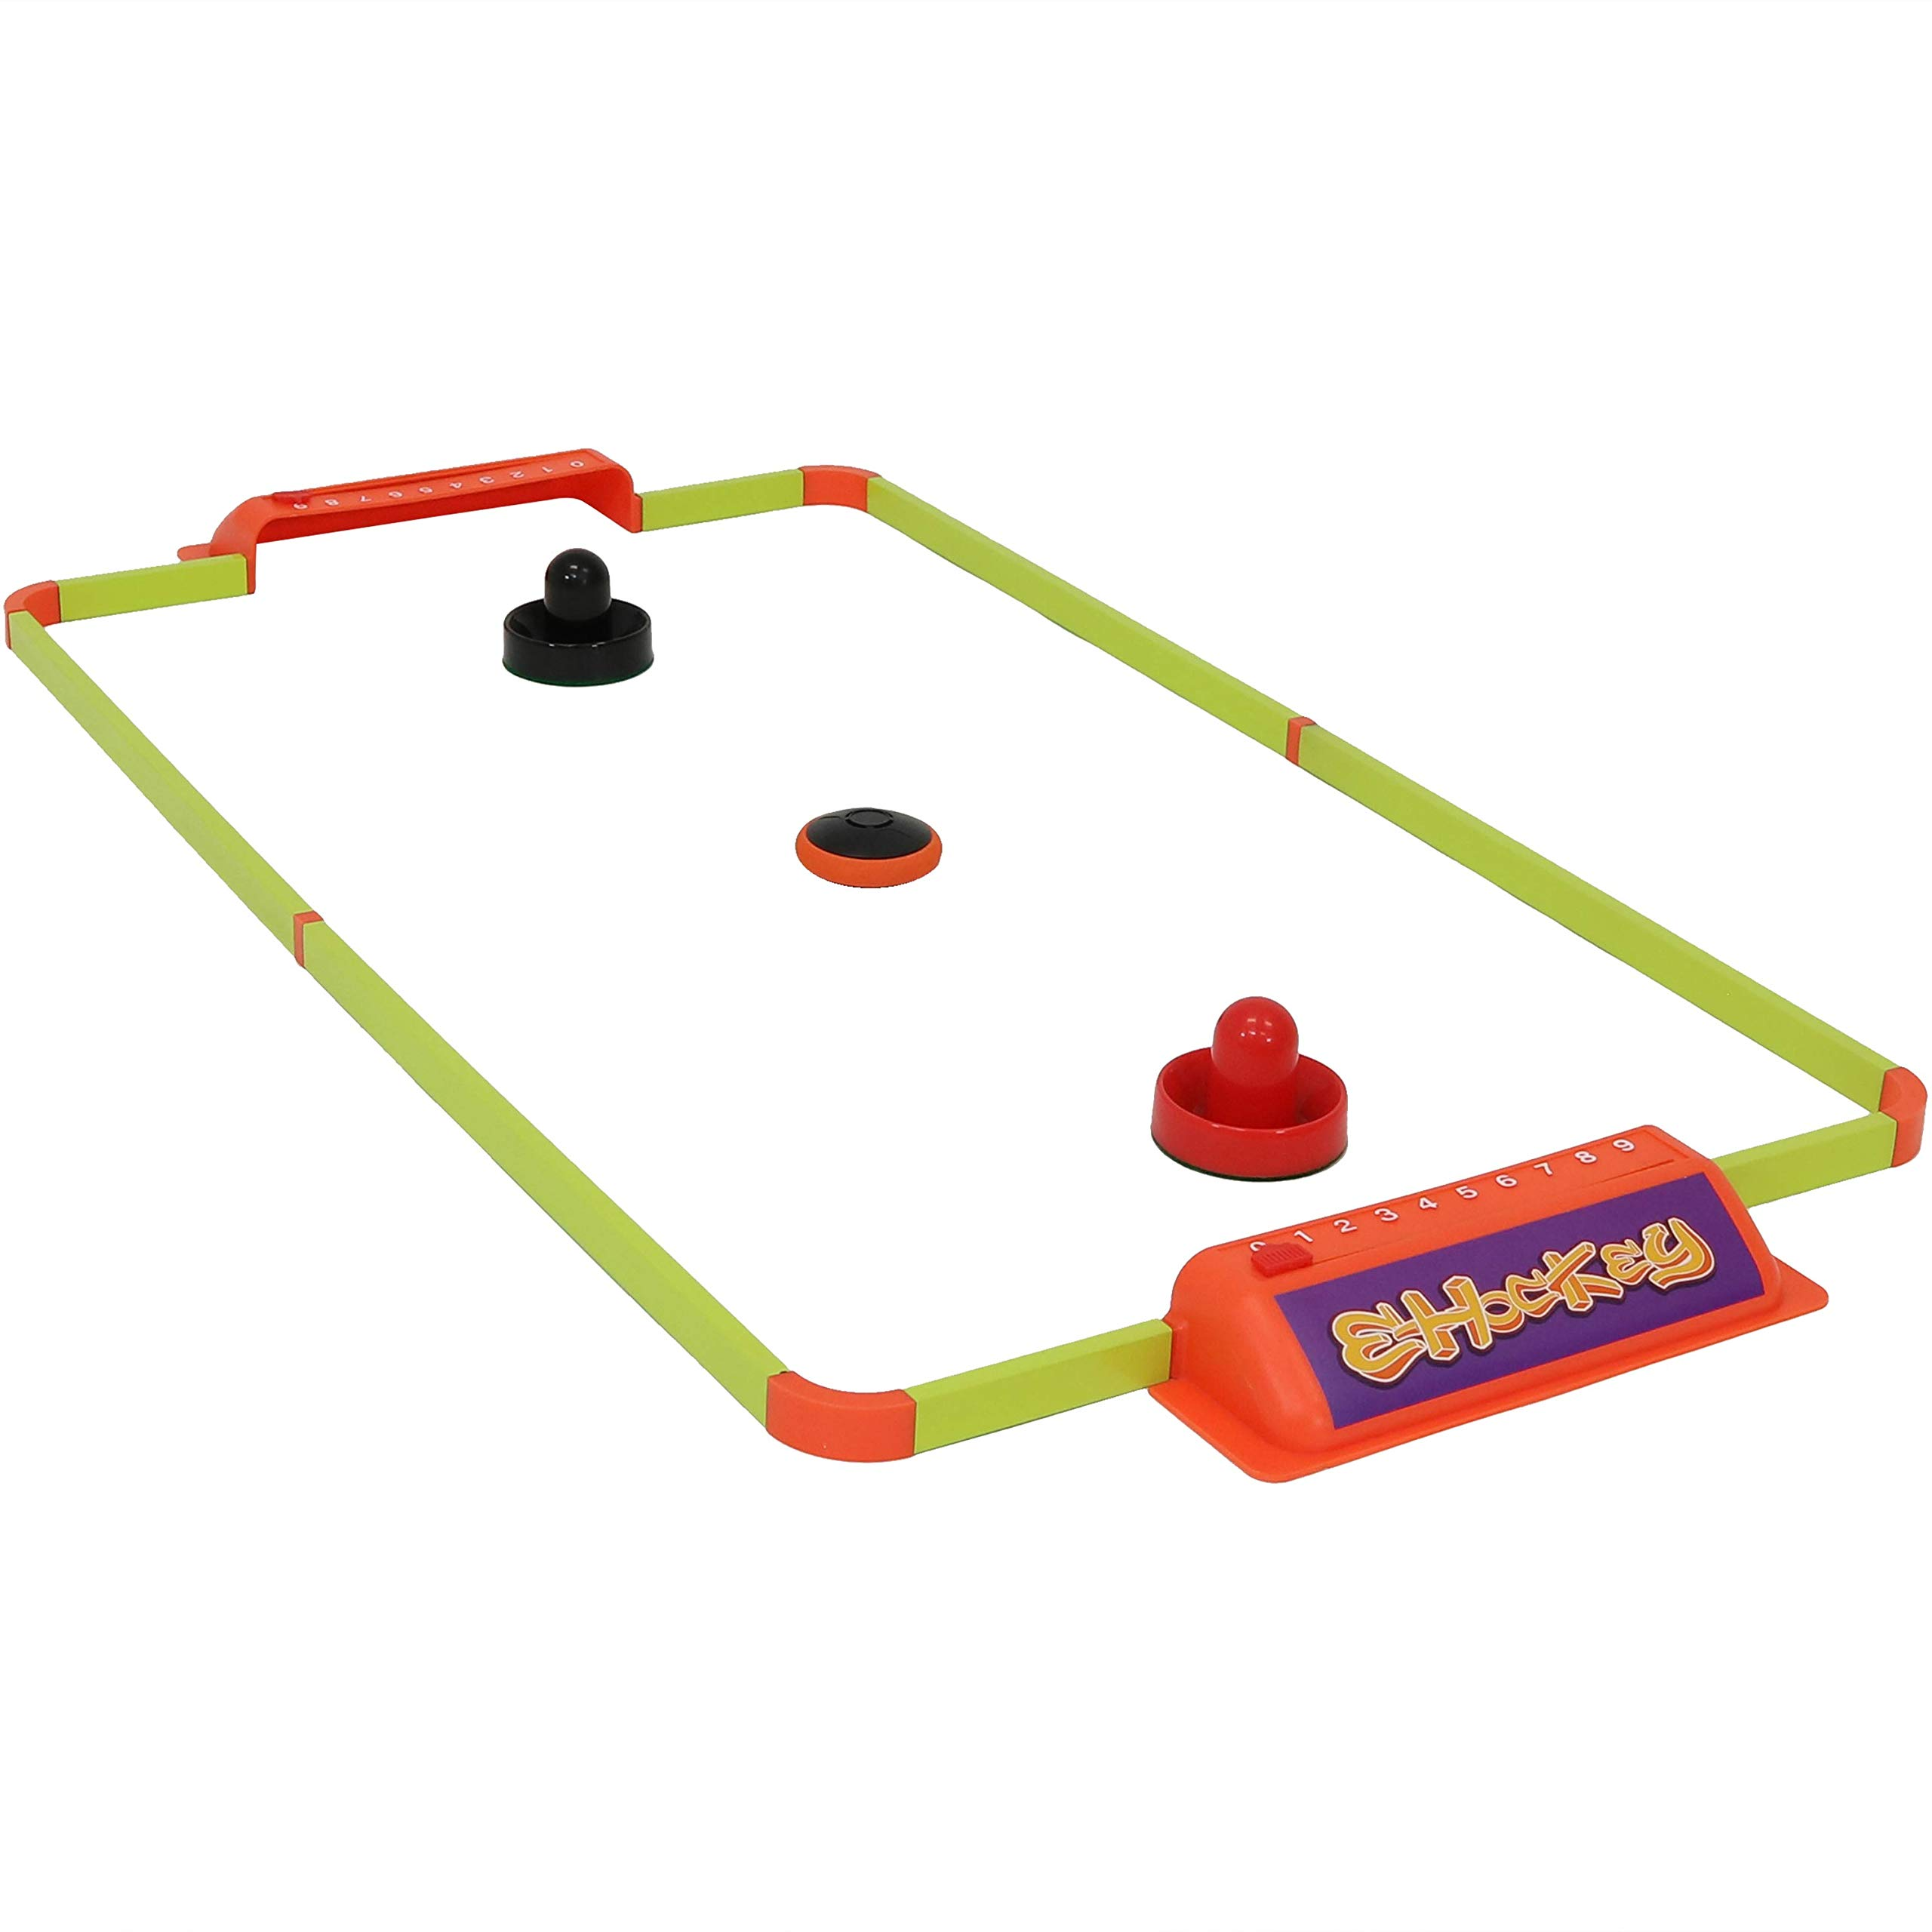 Sunnydaze Portable Hover Air Hockey Set, Mini Tabletop Game Table for Kids & Adults, 40-Inch by Sunnydaze Decor